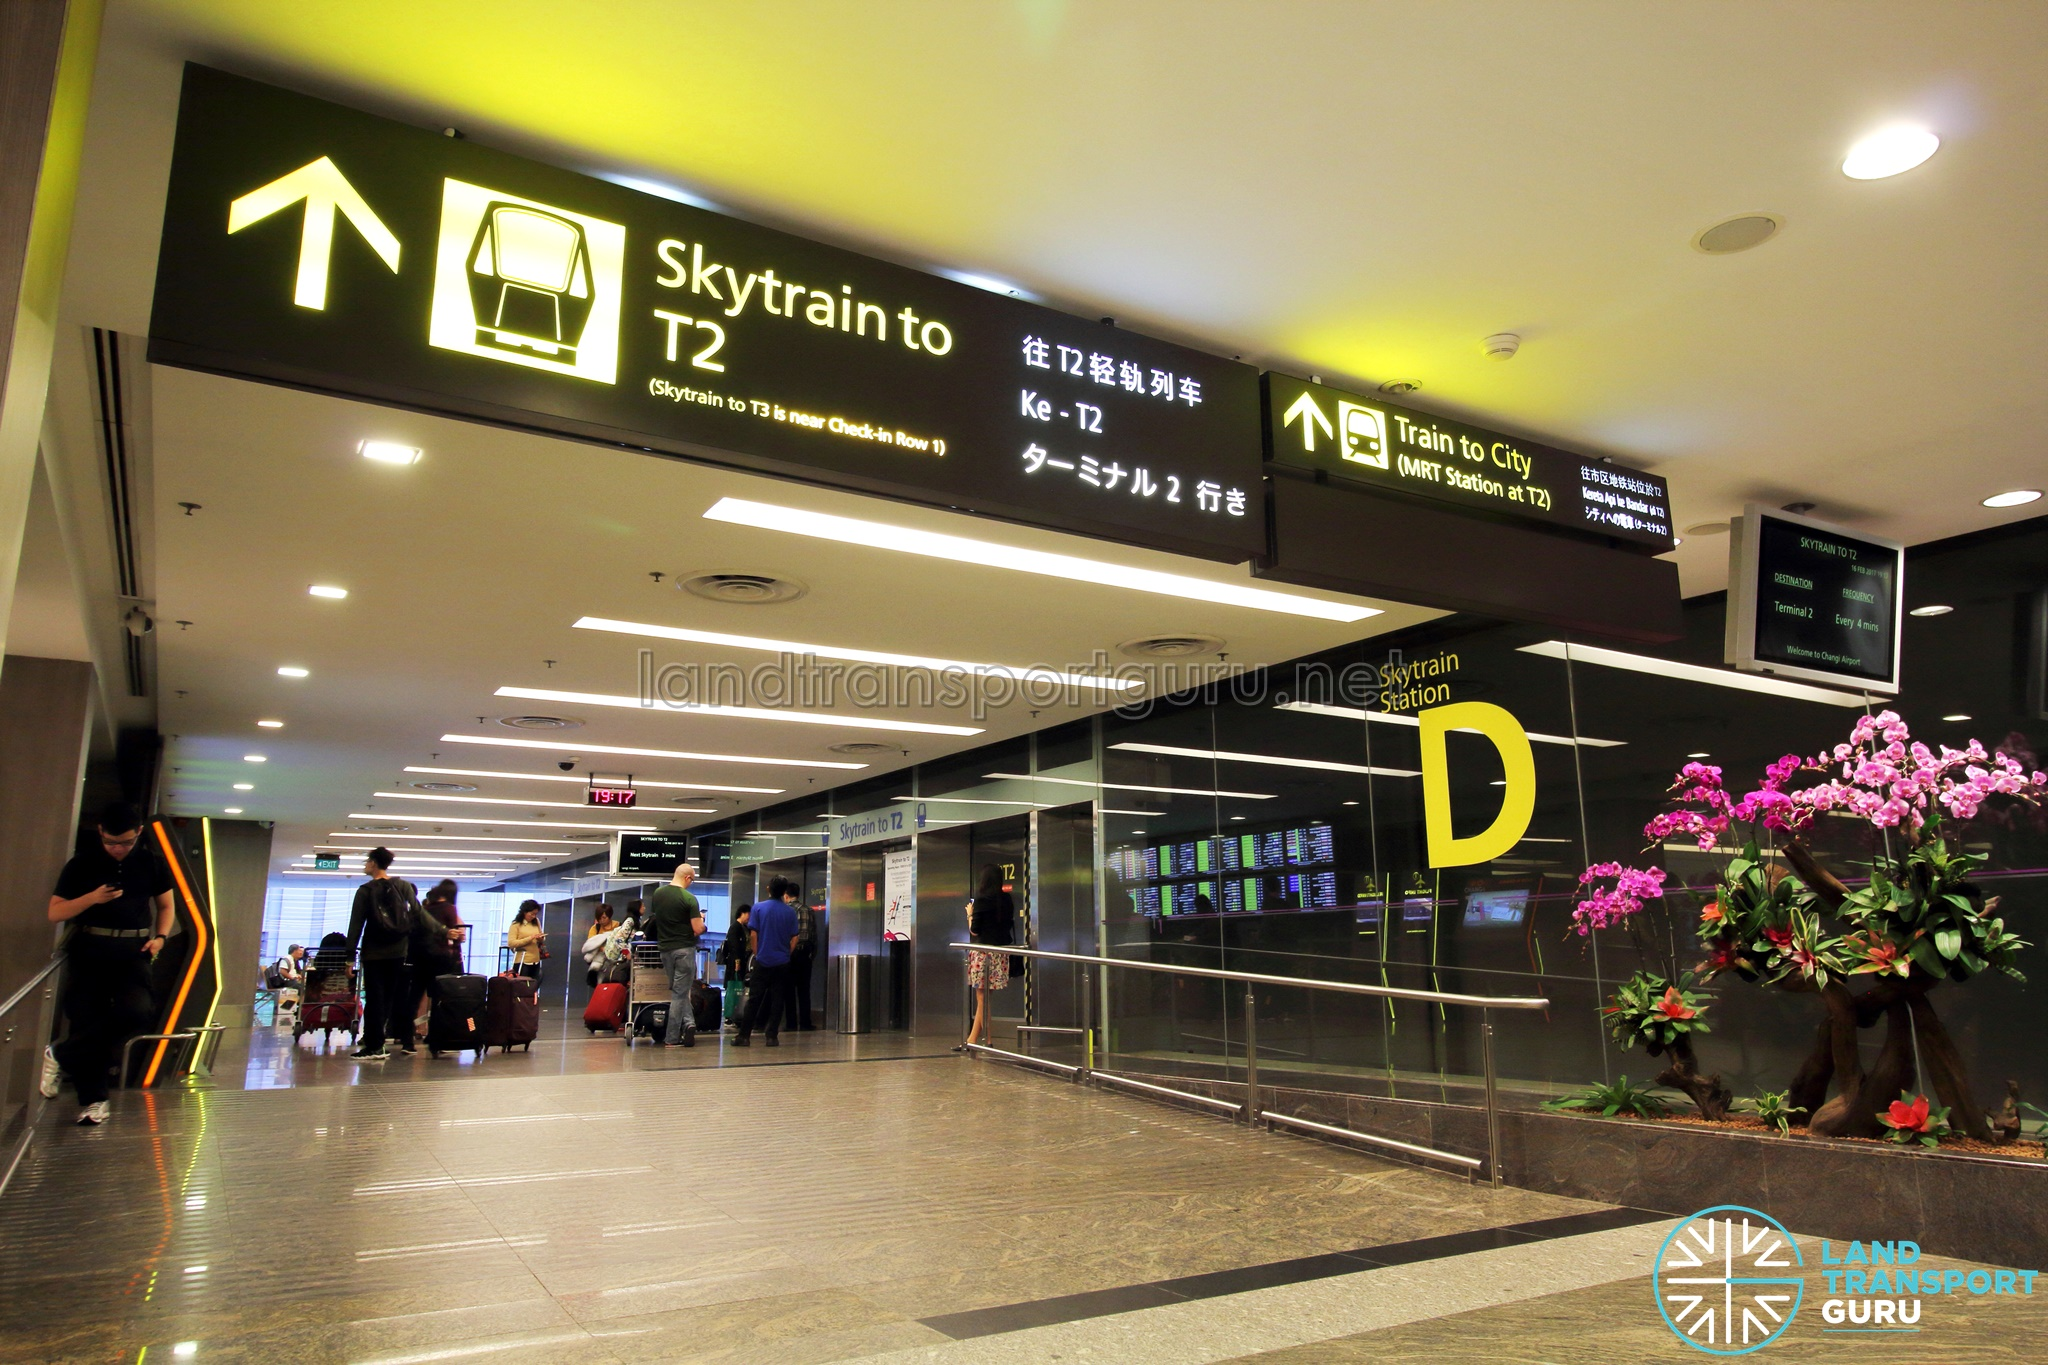 Changi Airport Skytrain station